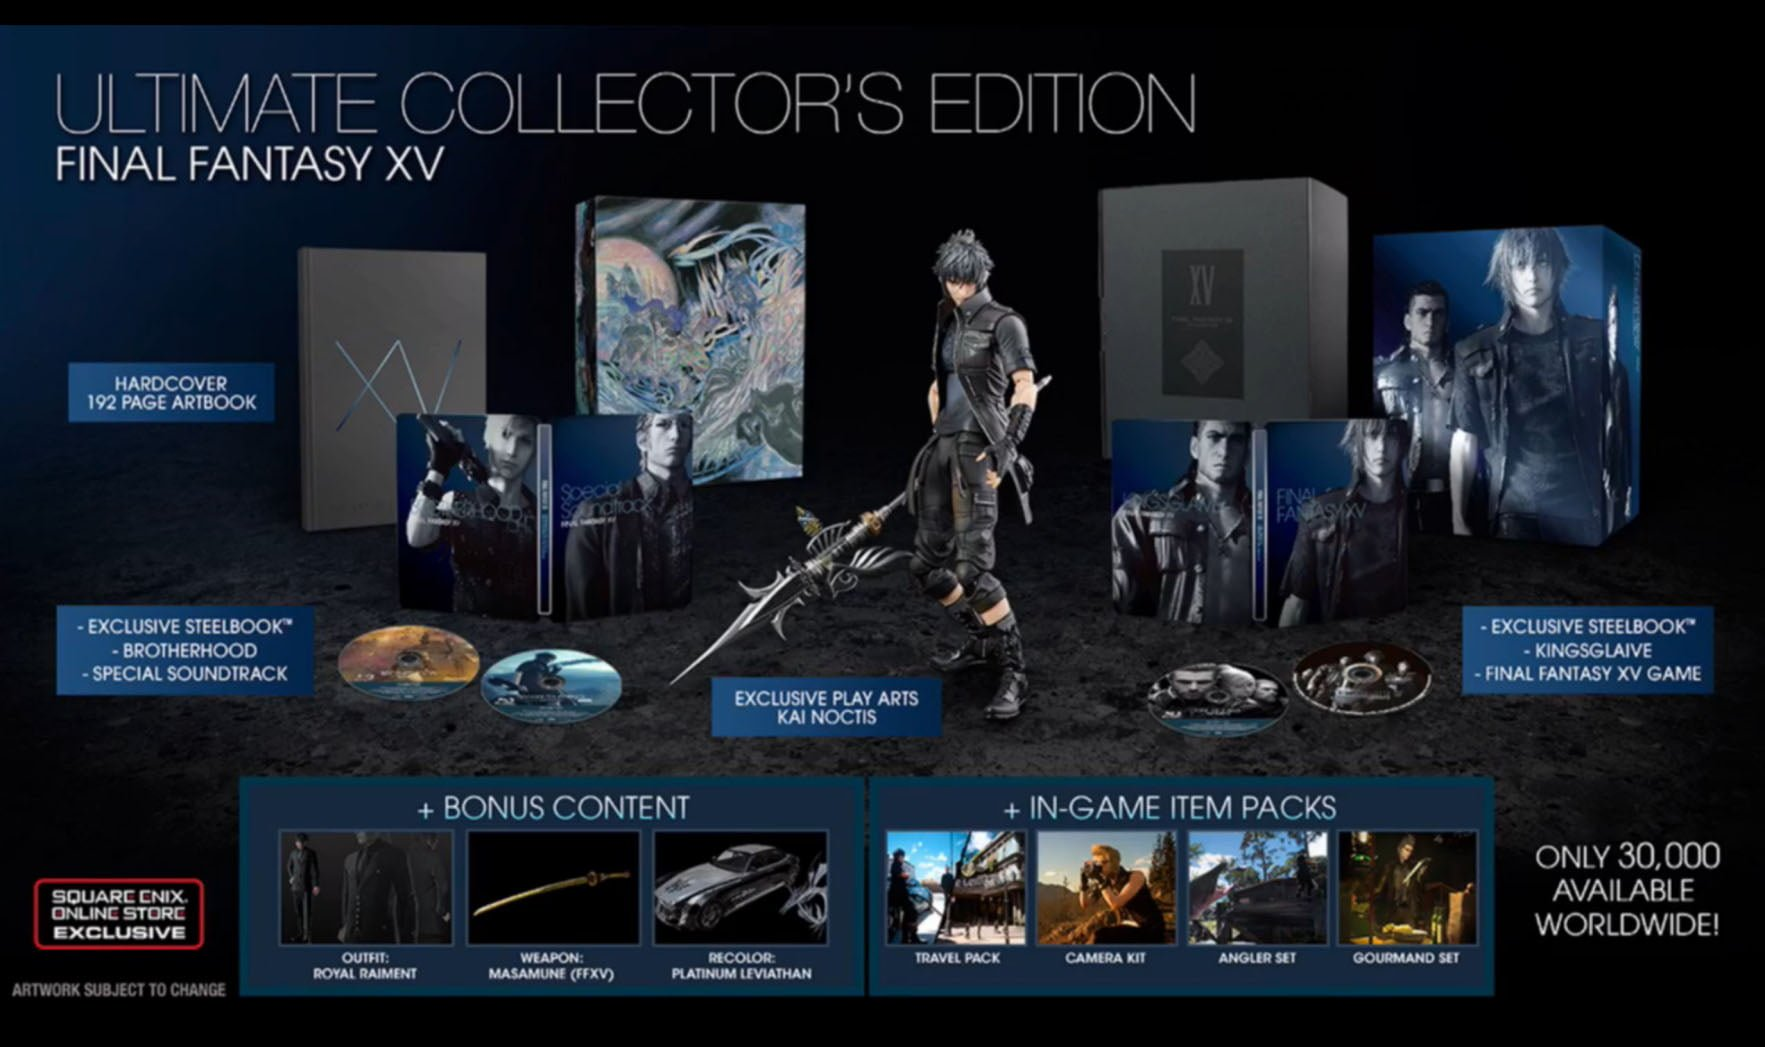 Final Fantasy XV Uncovered Ultimate Collector's Edition